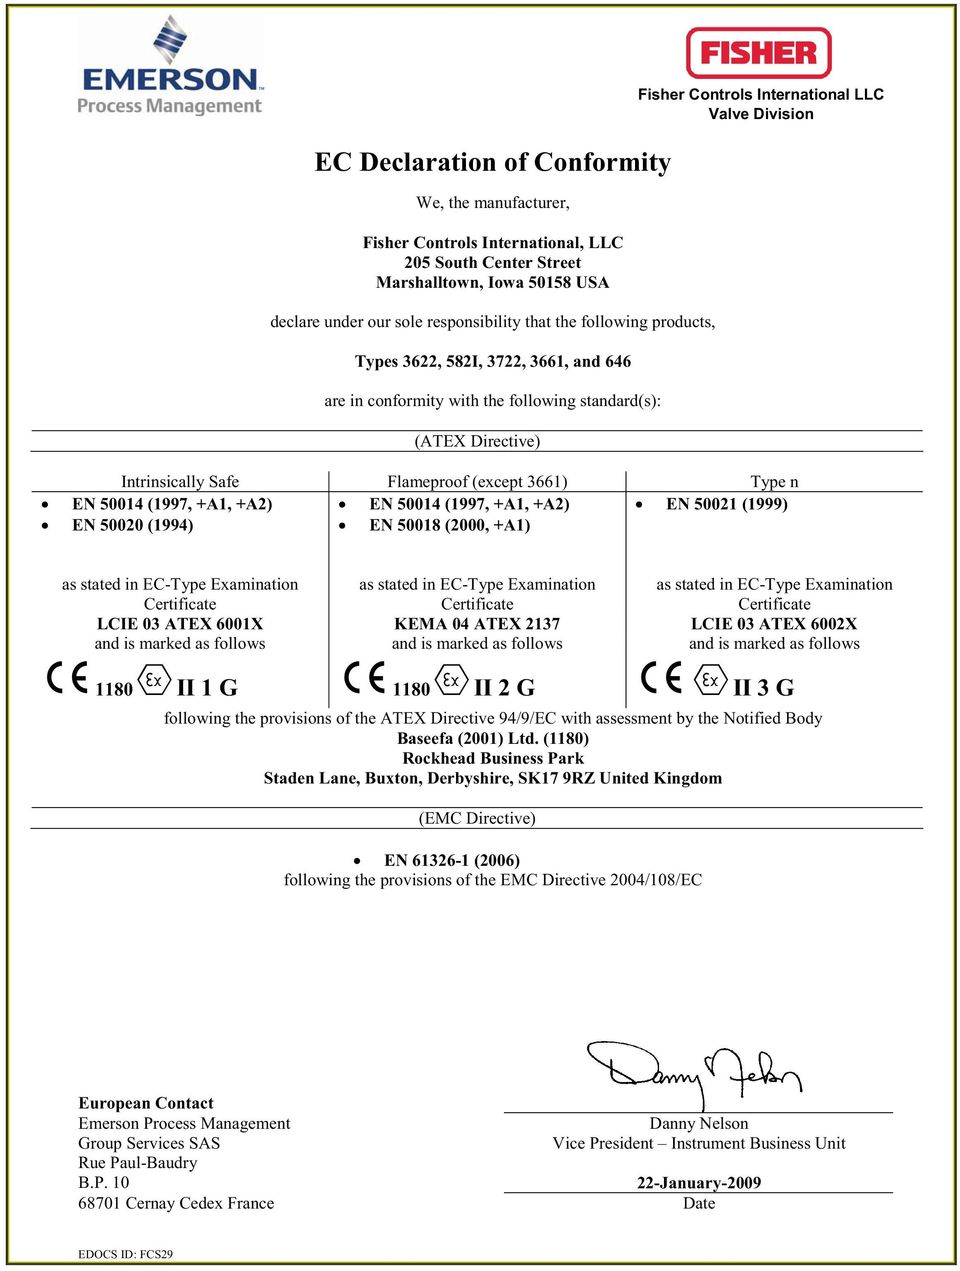 2137 LCIE 03 ATEX 6002X and is marked as follows and is marked as follows and is marked as follows 1180 II 1 G 1180 II 2 G II 3 G following the provisions of the ATEX Directive 94/9/EC with